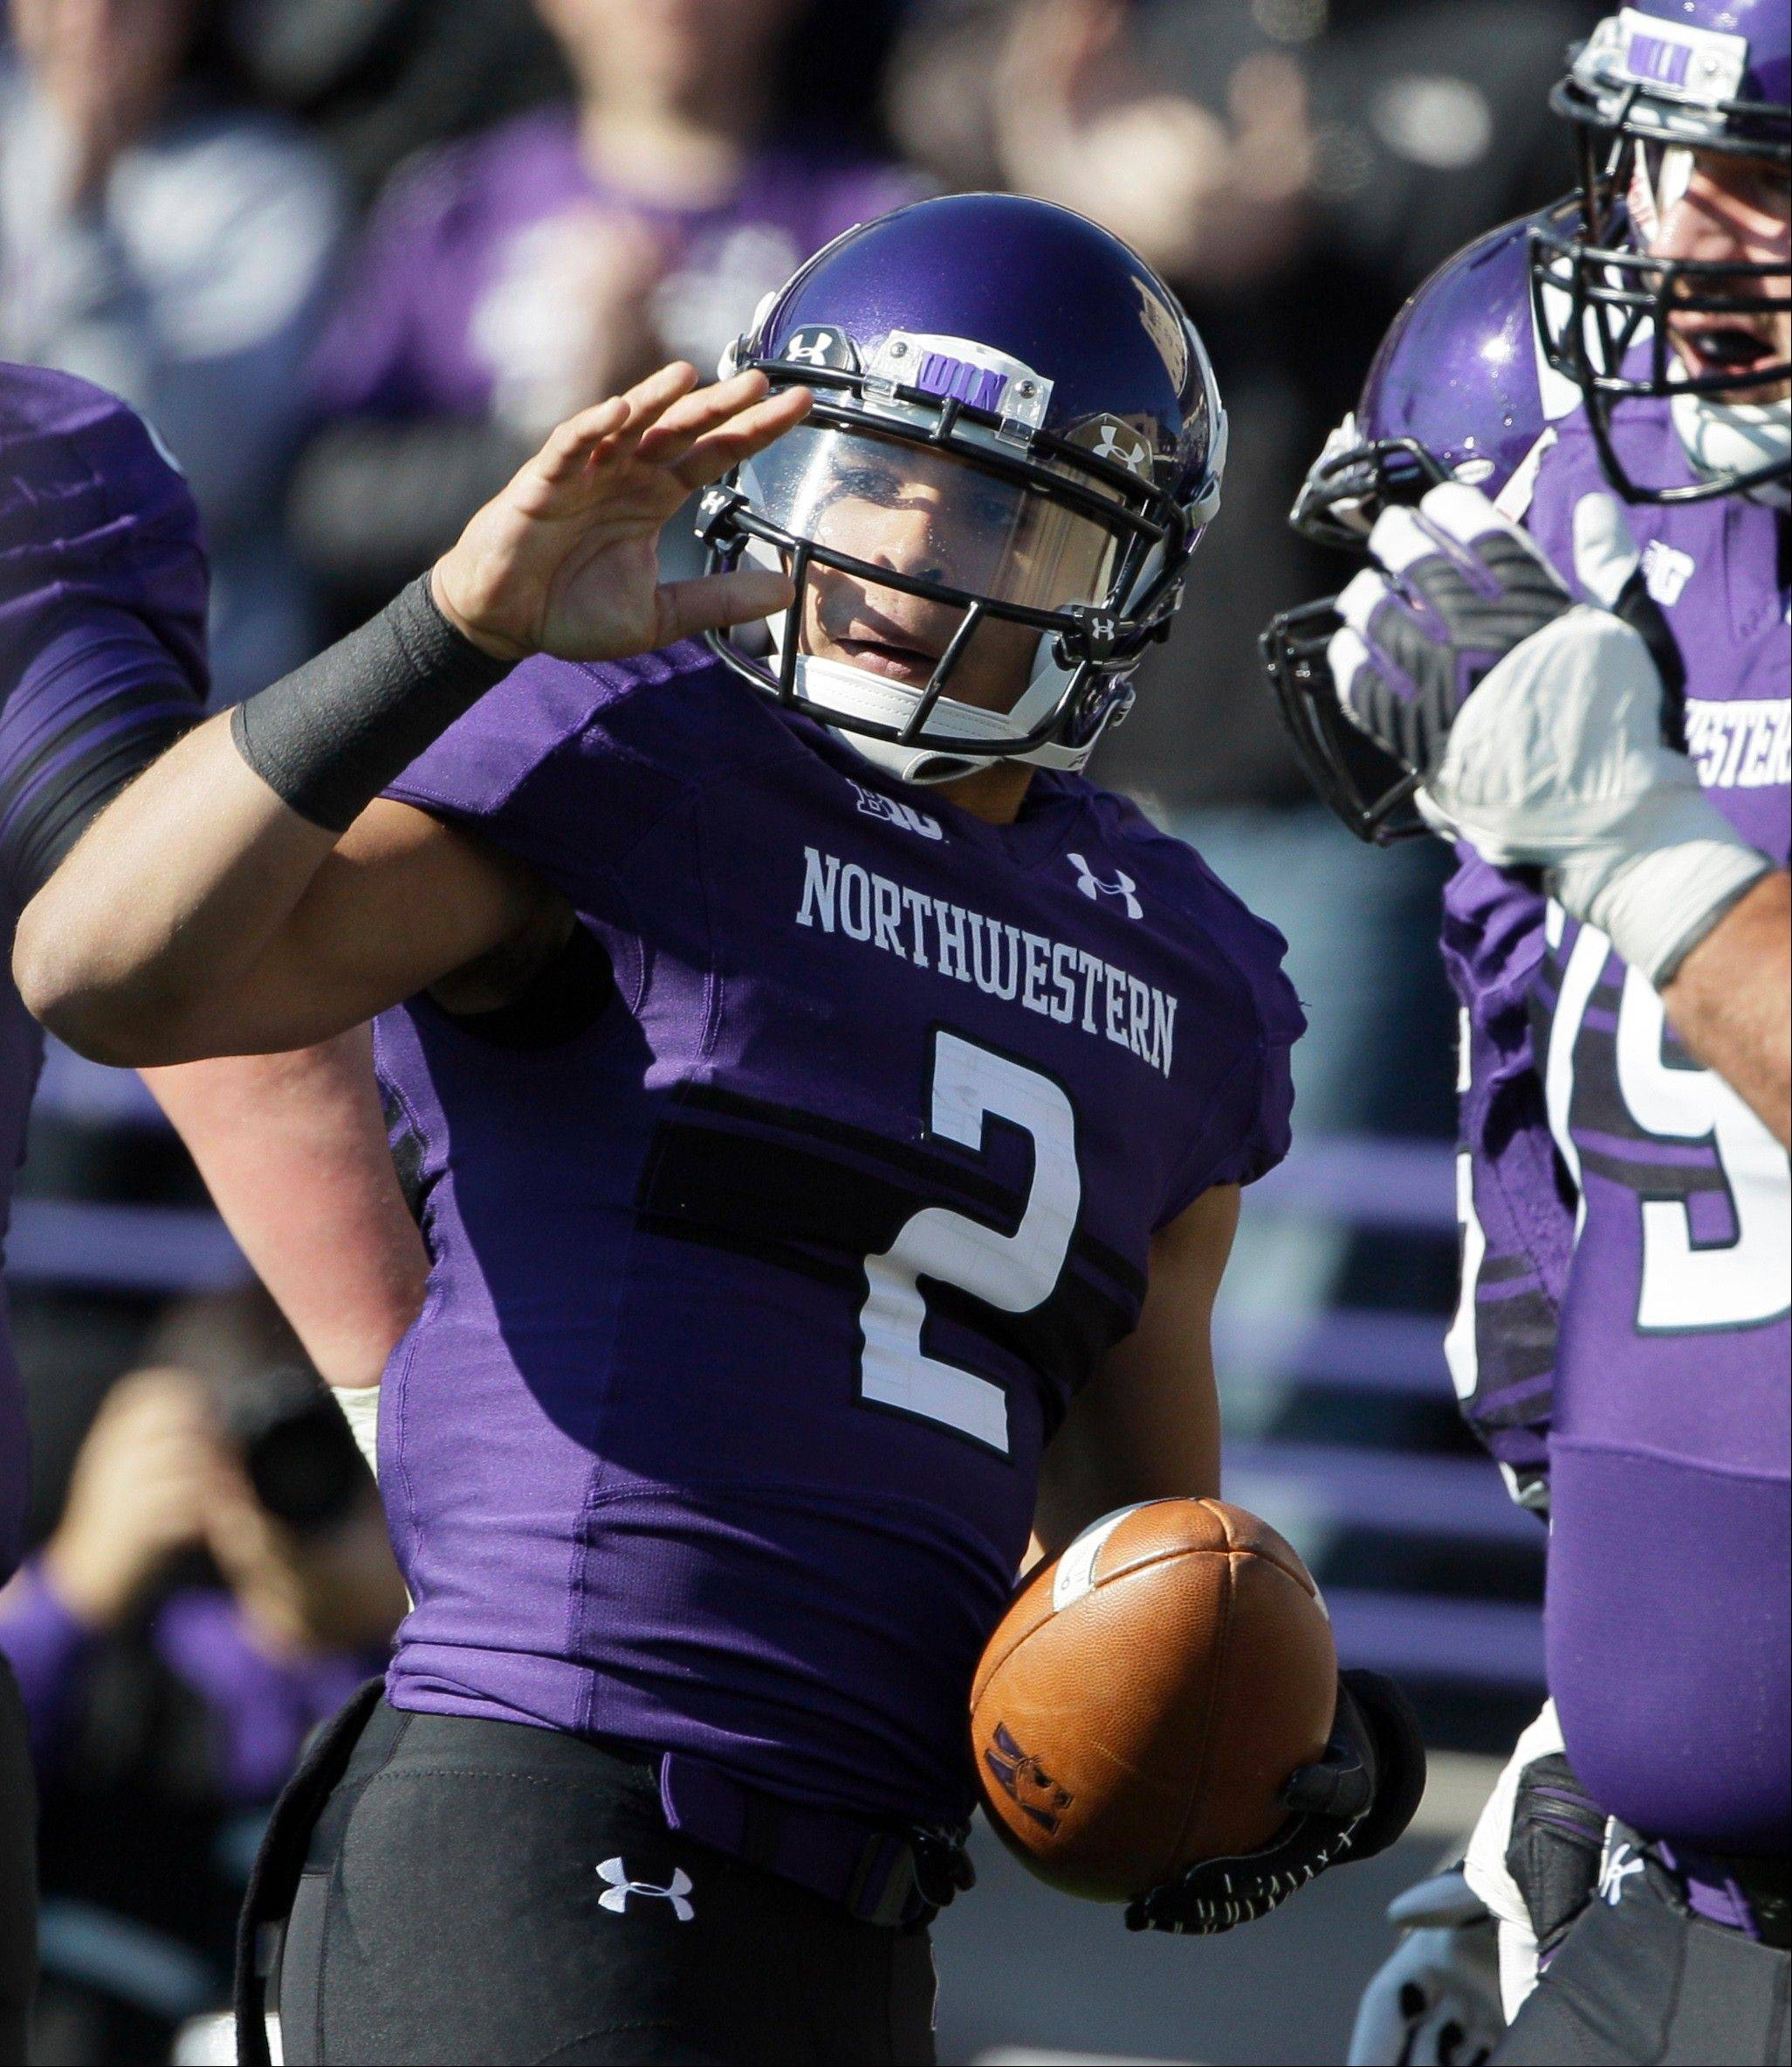 Northwestern quarterback Kain Colter is a spokesman for a proposed labor union that would like to represent college football players in their dealings with the NCAA.